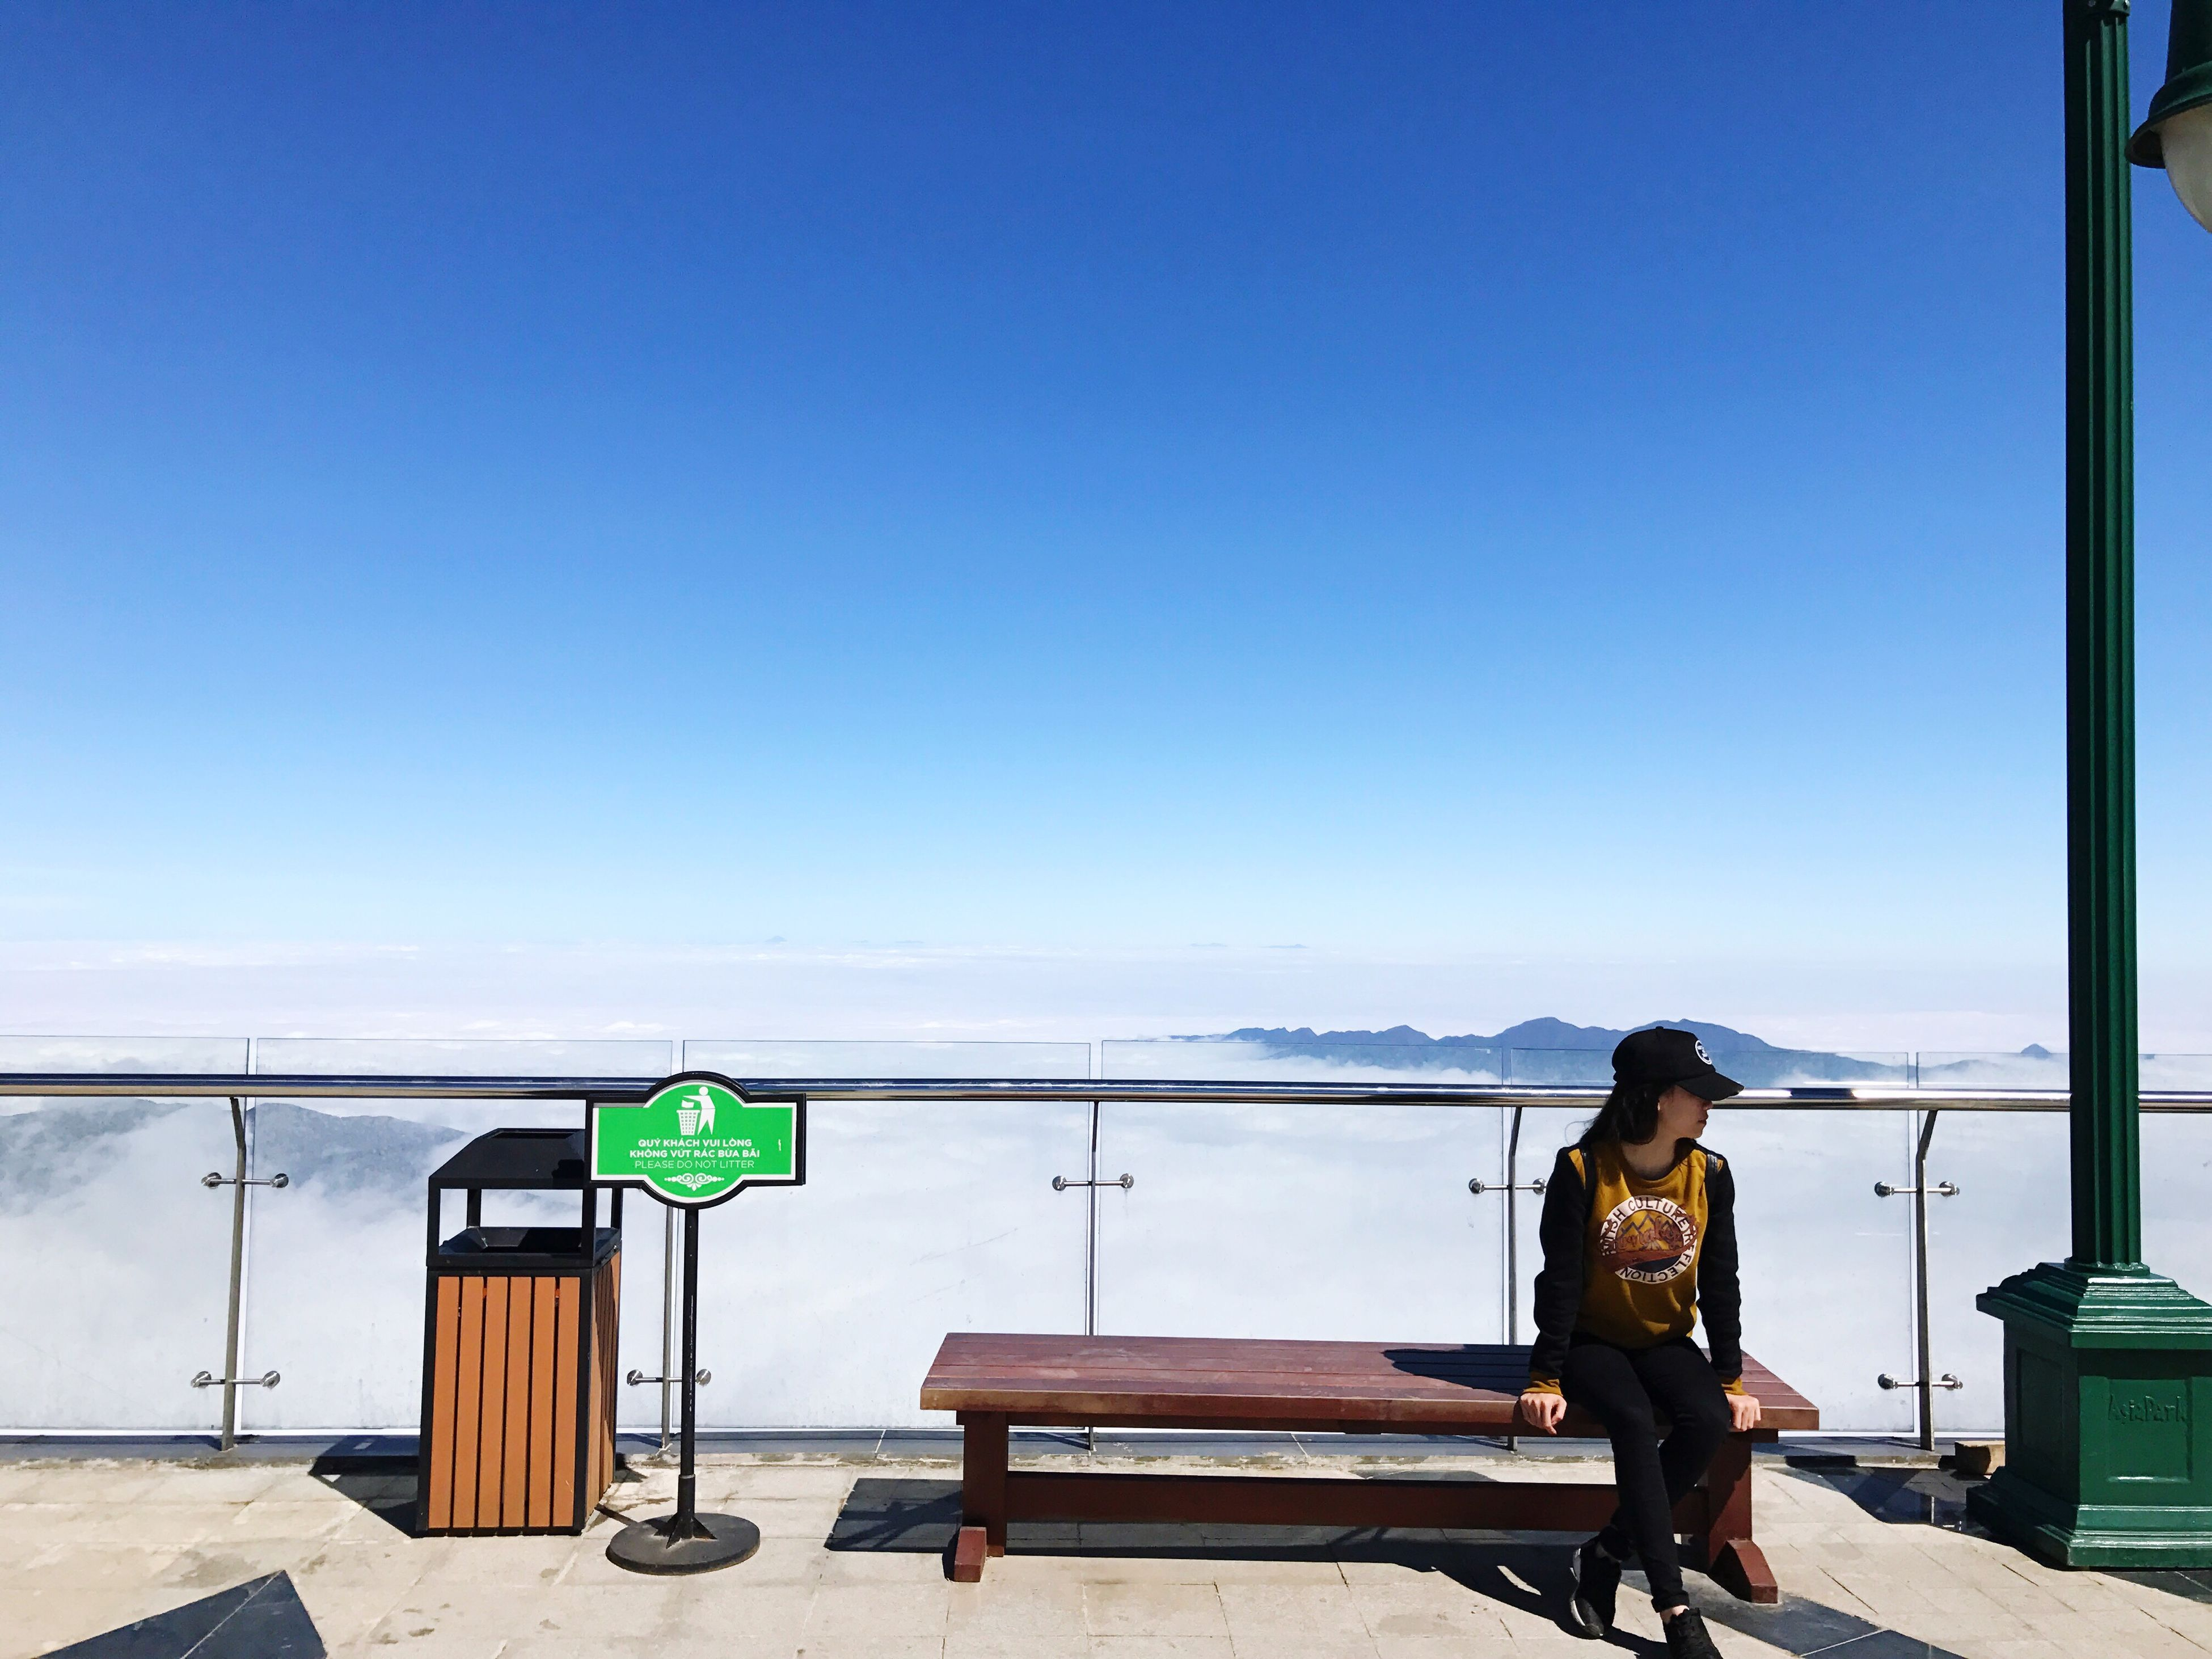 blue, clear sky, text, information sign, real people, communication, outdoors, sky, sea, day, one person, nature, people